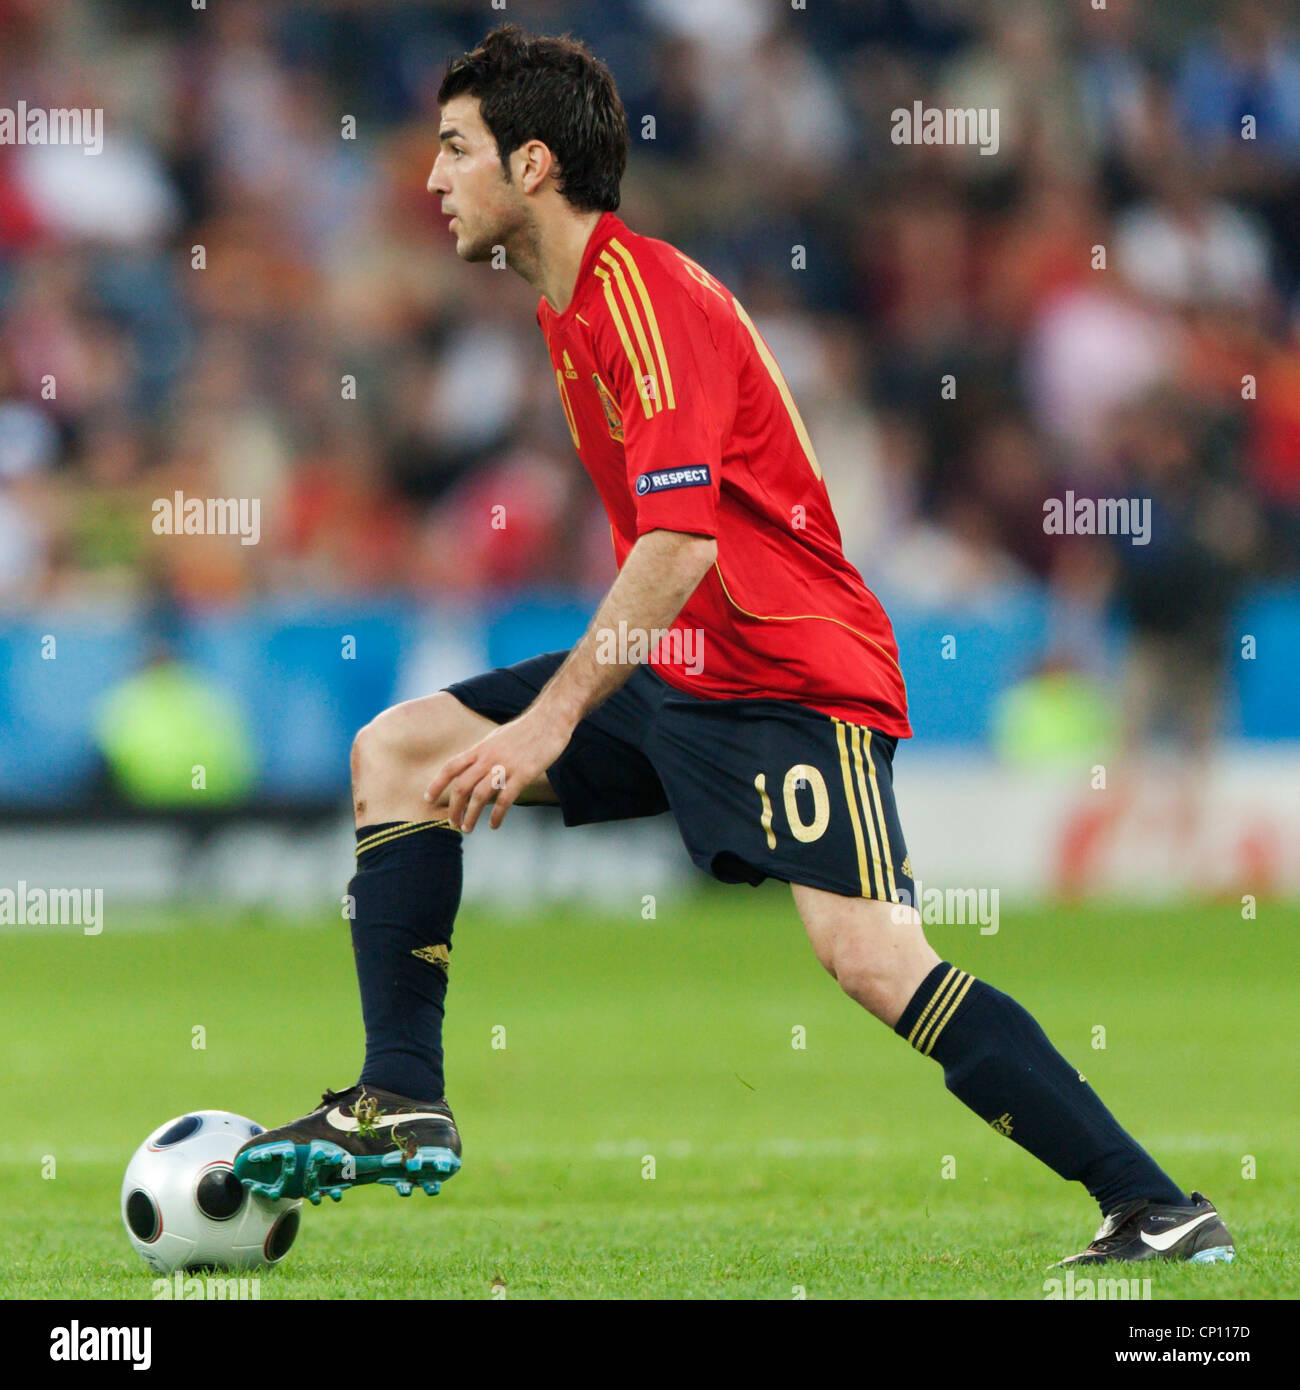 Cesc Fabregas of Spain on the ball during a UEFA Euro 2008 Group D match against Greece at Stadion Wals-Siezenheim. - Stock Image